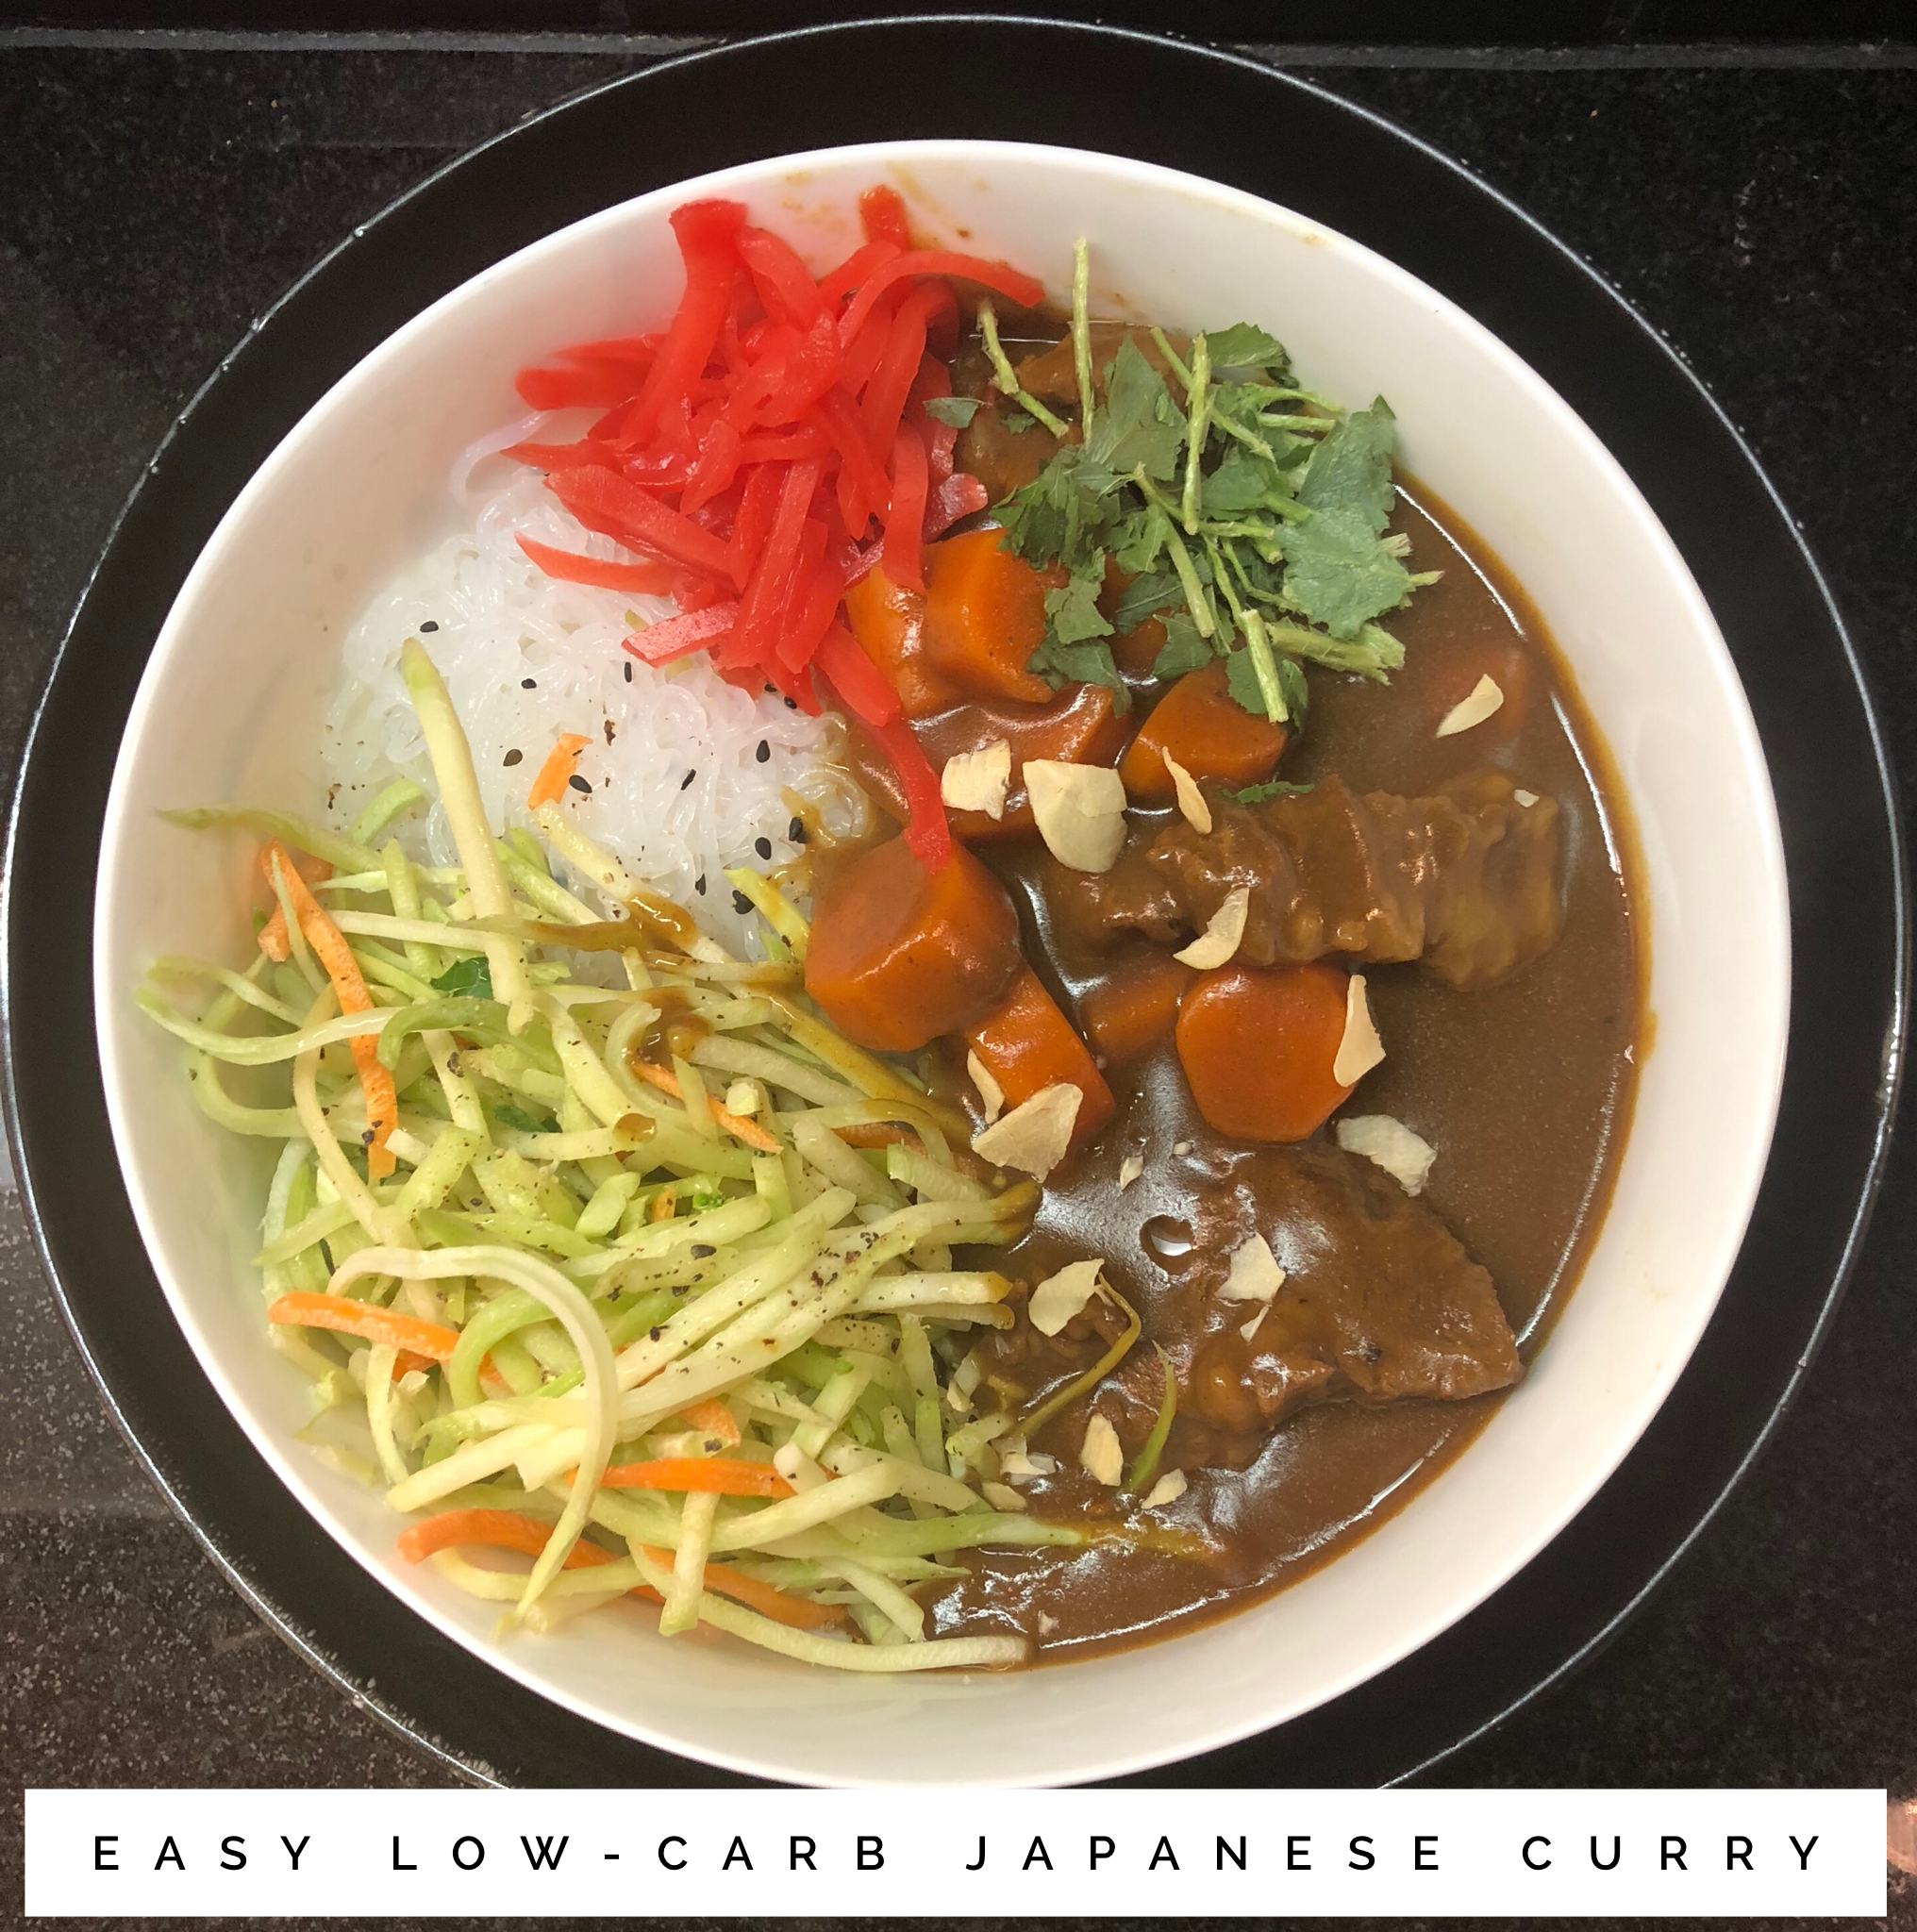 Low Carb Japanese Curry